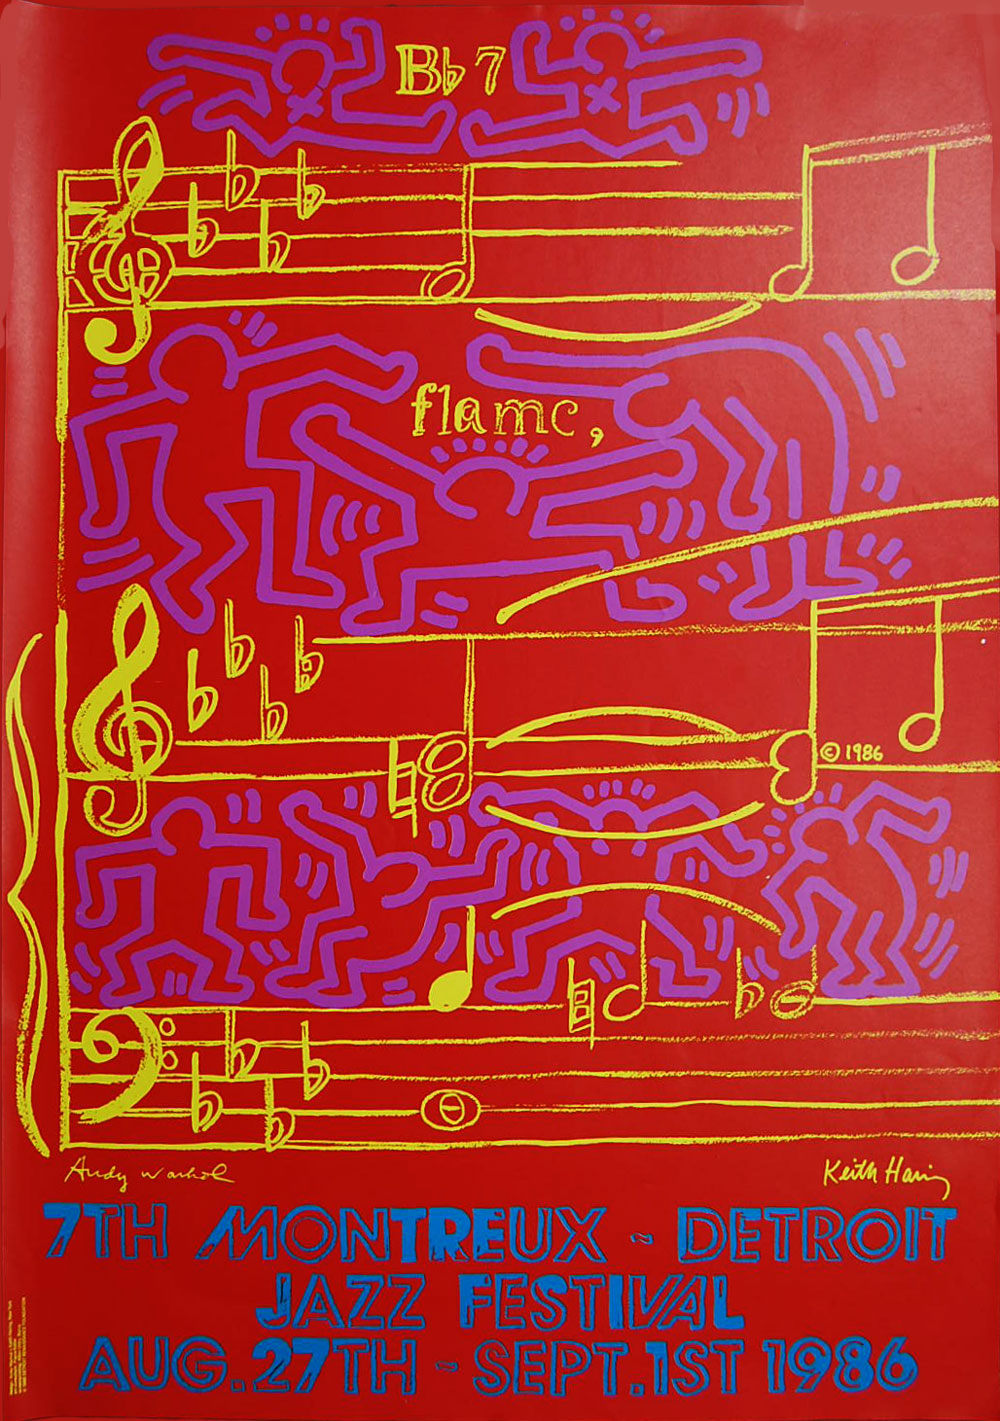 Keith-Haring-&-Andy-Warhol-'Seventh-Montreux-Detroit-Jazz-Fest'-–-1986-Poster510